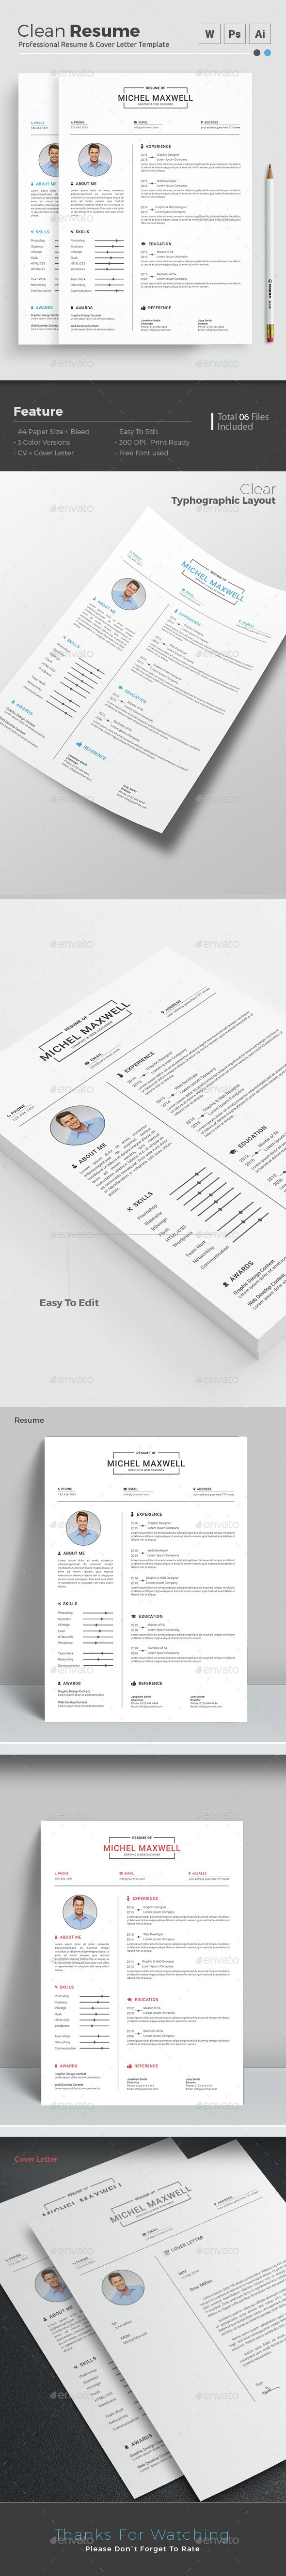 Simple U0026 Clean Resume Template PSD. Download Here:  Http://graphicriver.net/item/simple Clean Resume/14938211?refu003dksioks